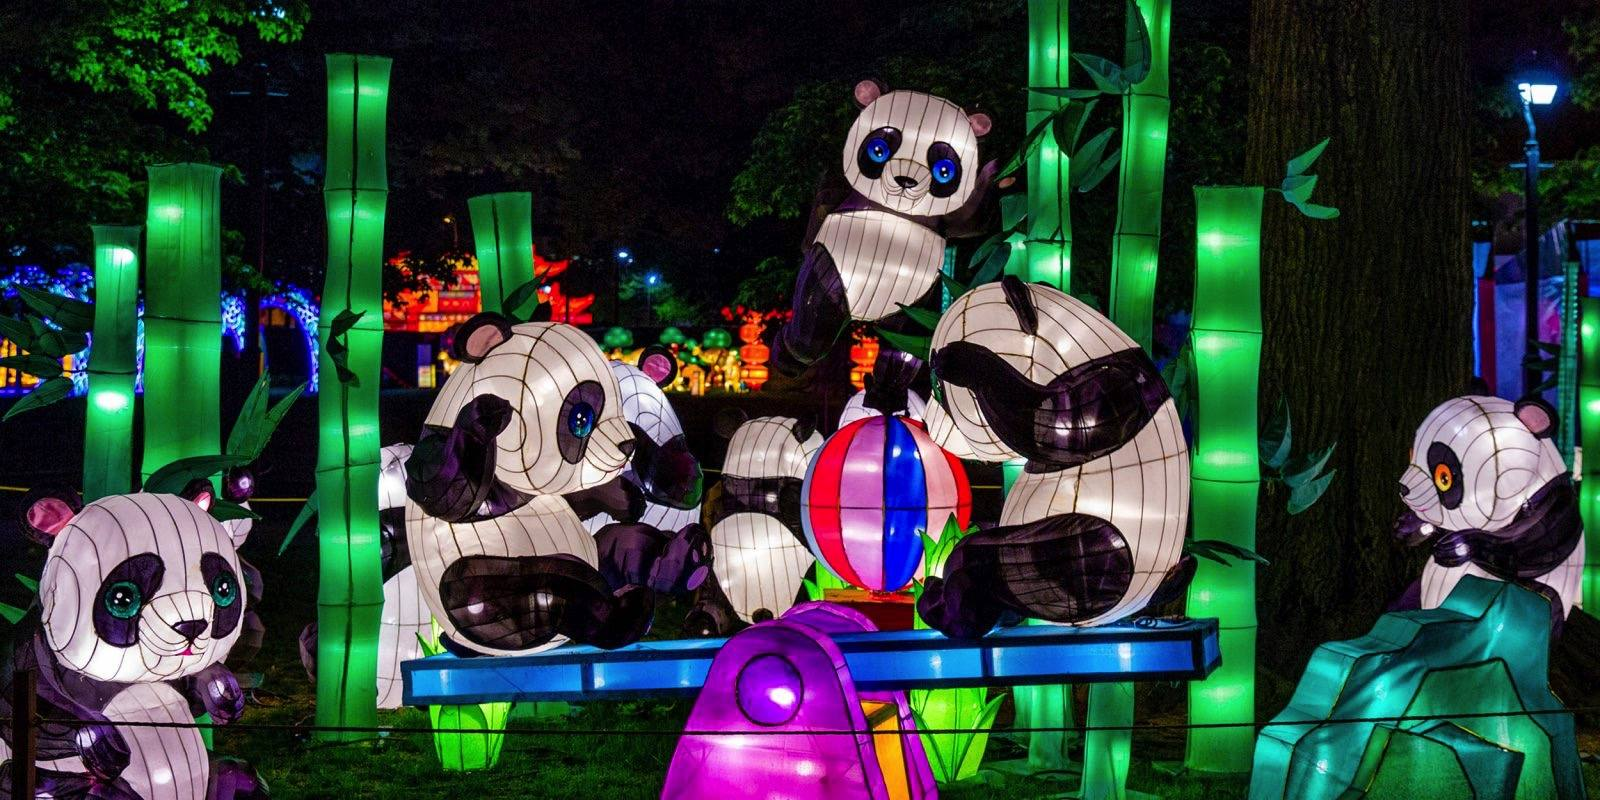 Moonlight Forest Pandas at the Los Angeles County Arboretum and Botanic Garden